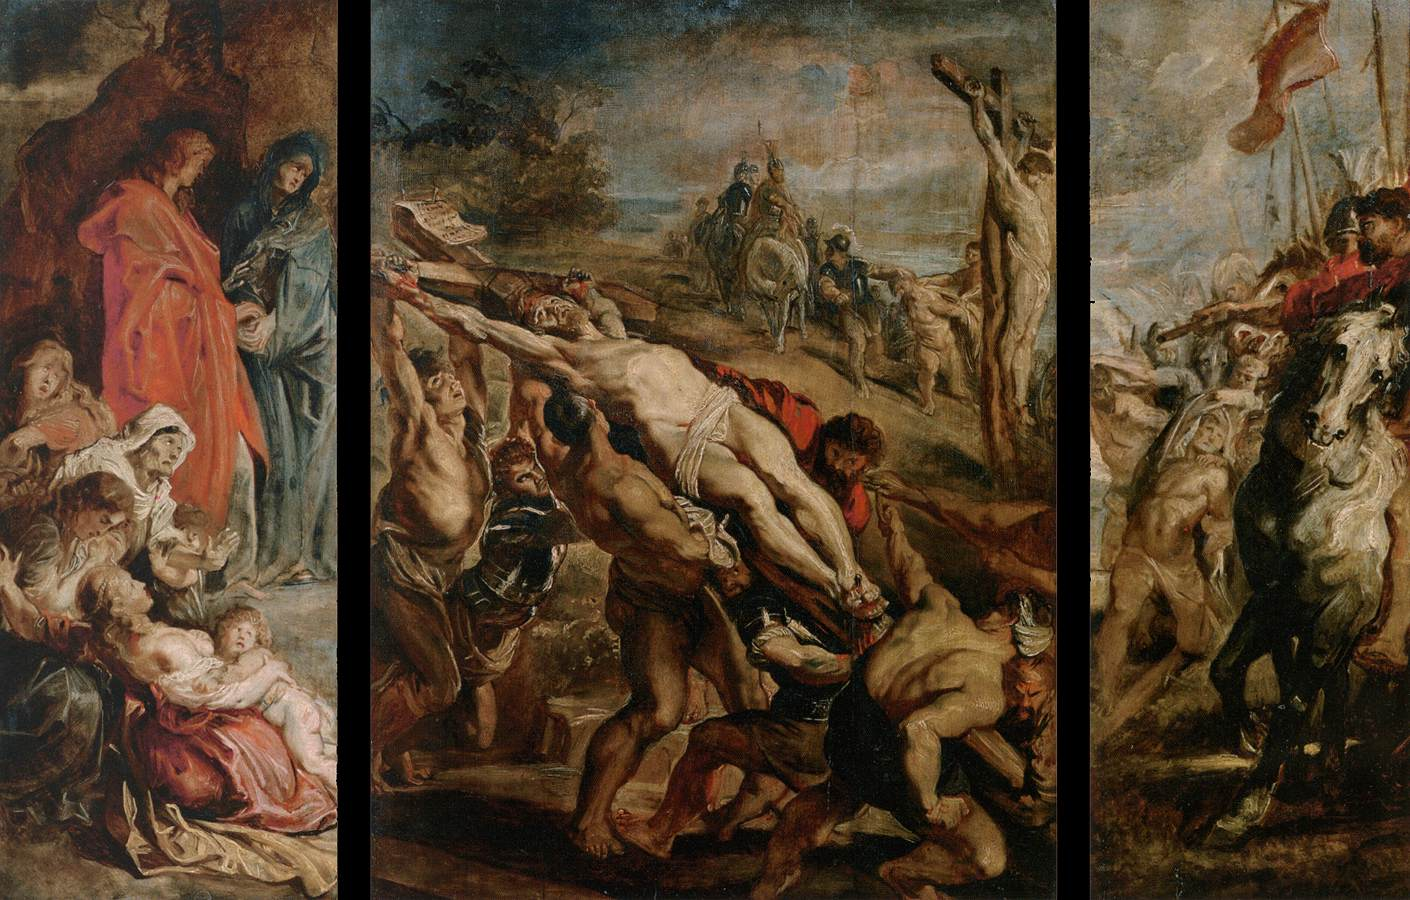 the raising of the cross by peter paul rubens The elevation of the cross is the name of two paintings, a triptych painting, and  an oil on paper  peter paul rubens - raising of the cross - 1610jpg  peter  paul rubens painted the triptych the elevation of the cross after returning to.